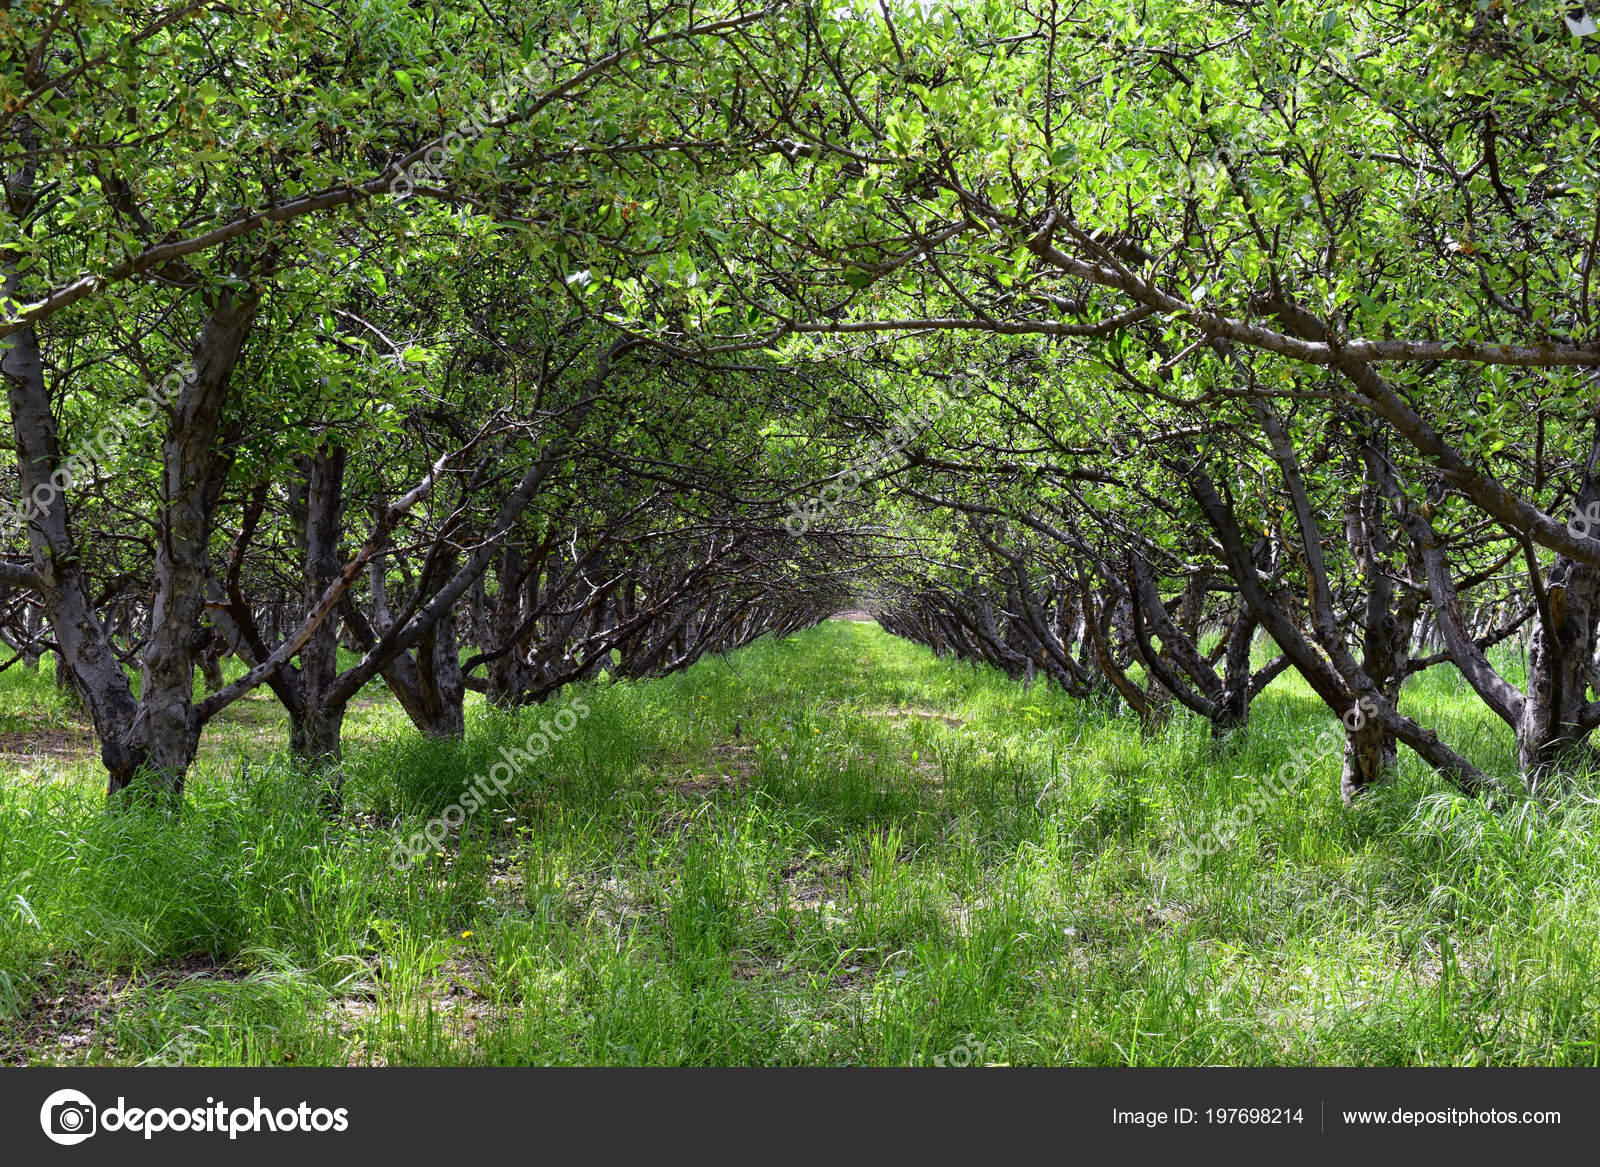 Spring Apple Fruit Trees Orchard Row Apple Trees Green Grass Stock Photo C Jeremyarnica 197698214